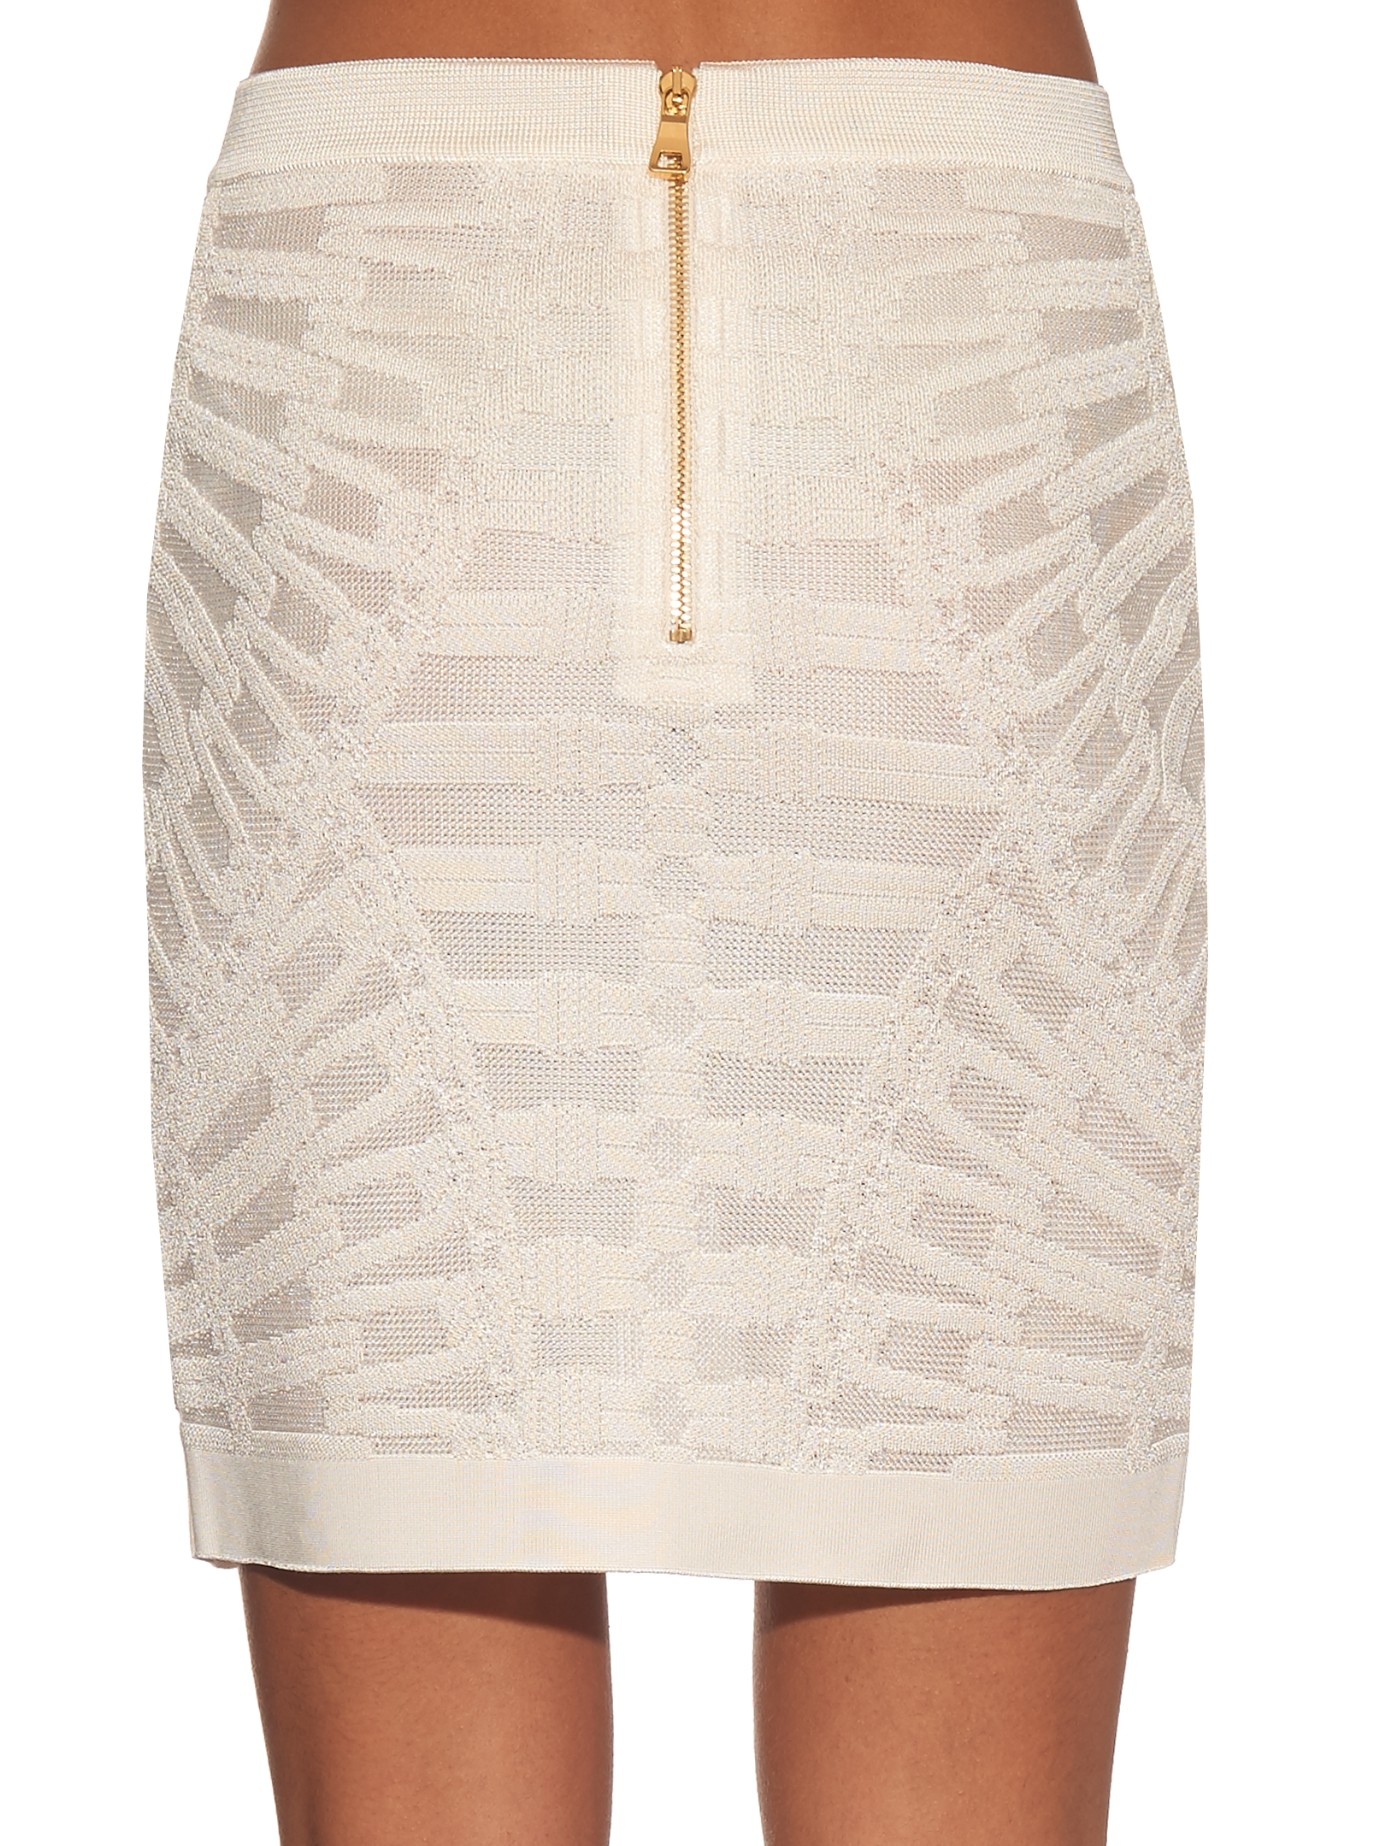 Balmain Spine Intarsia-knit Mini Skirt in White | Lyst